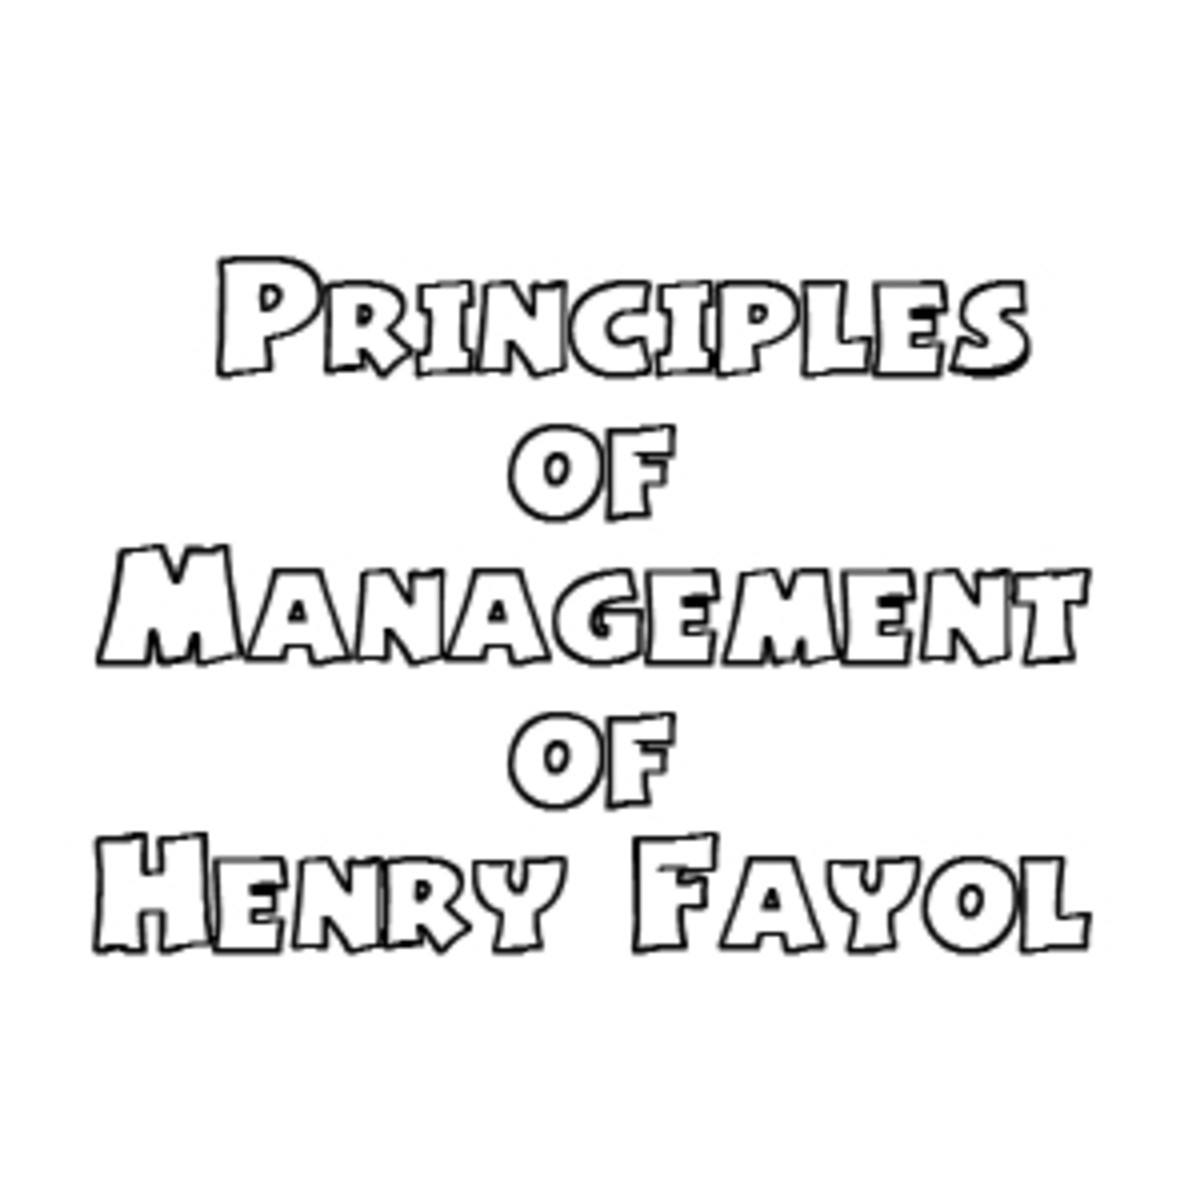 principles of management of henry fayol